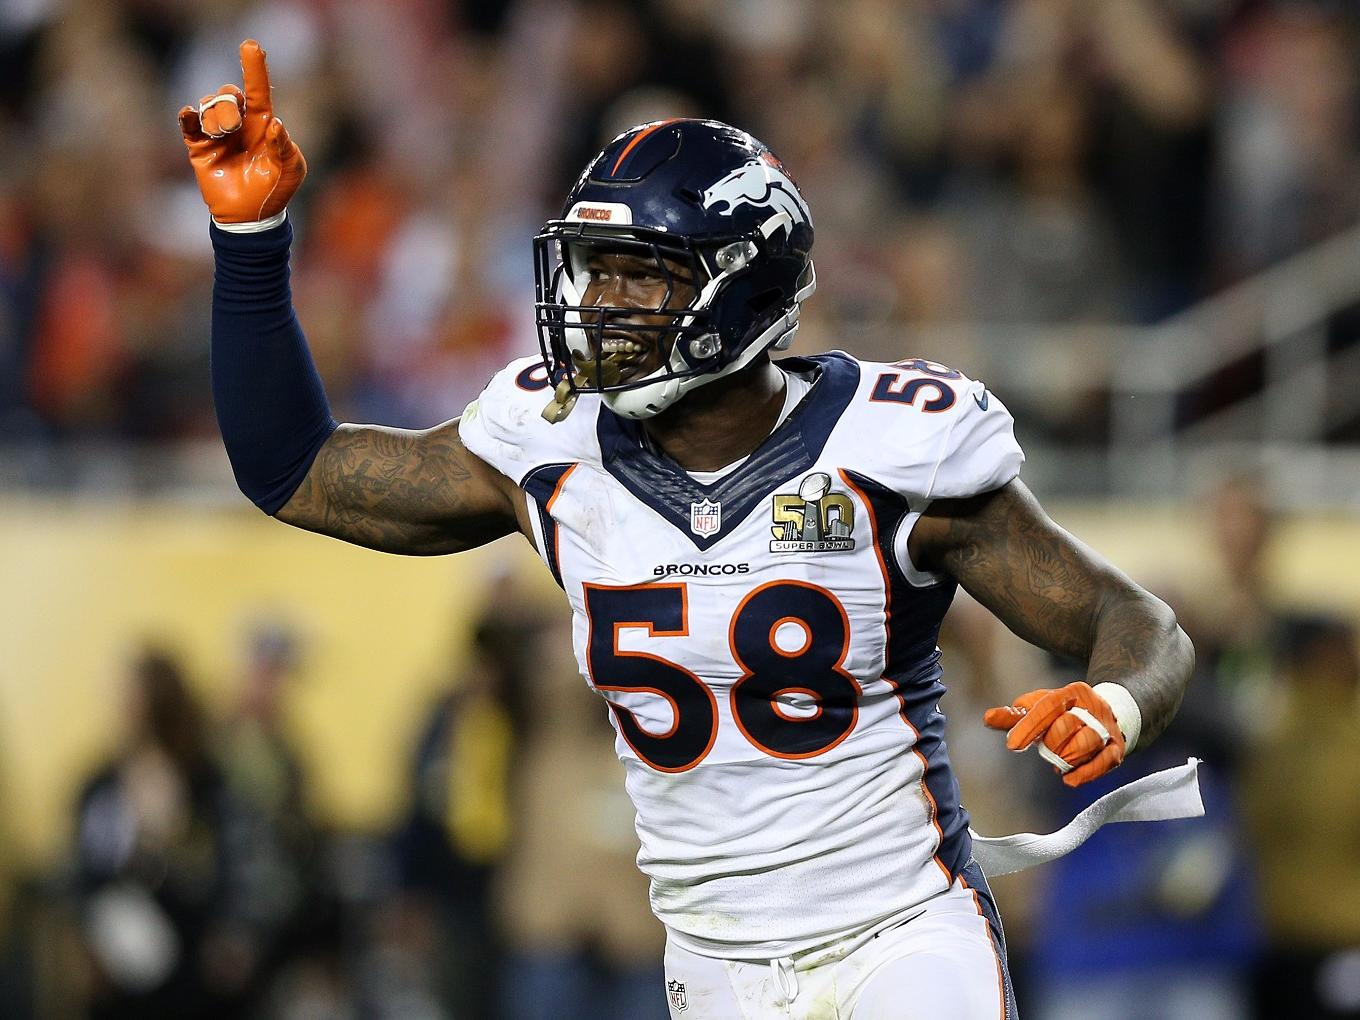 Super Bowl MVP Von Miller cut out red meat, sports drinks, and junk food in the offseason to terrorize quarterbacks even more